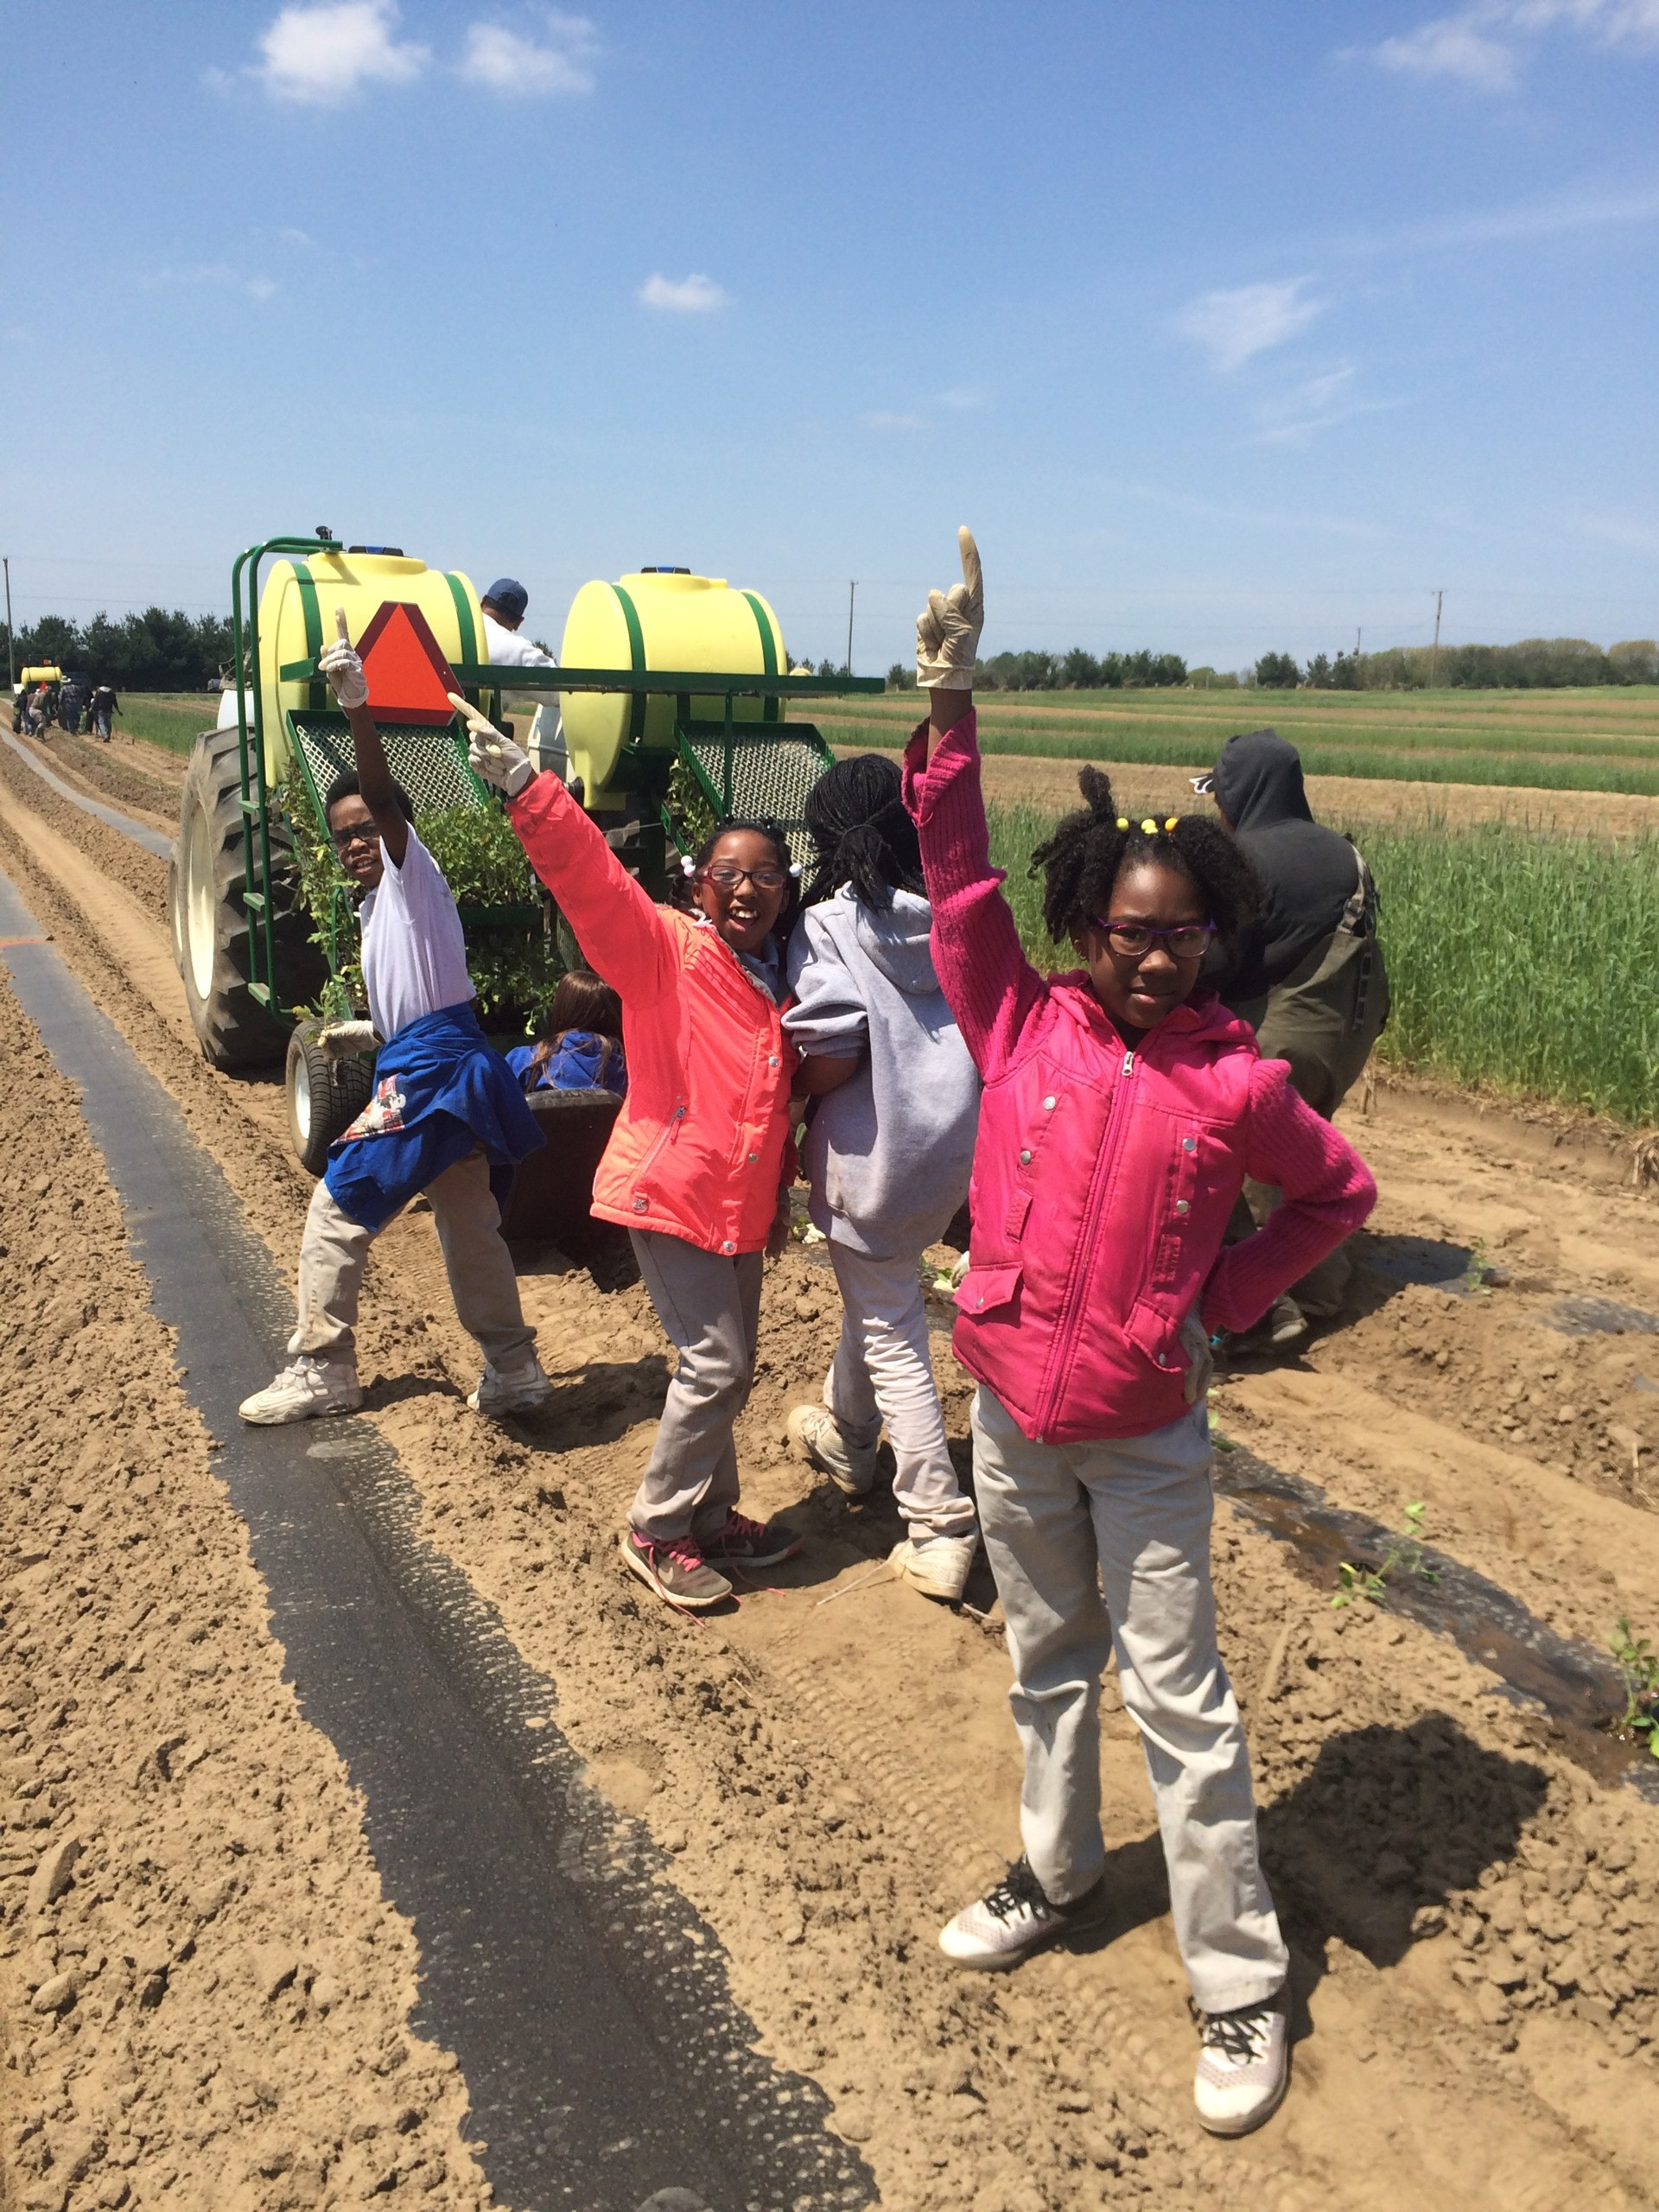 Students on the farm